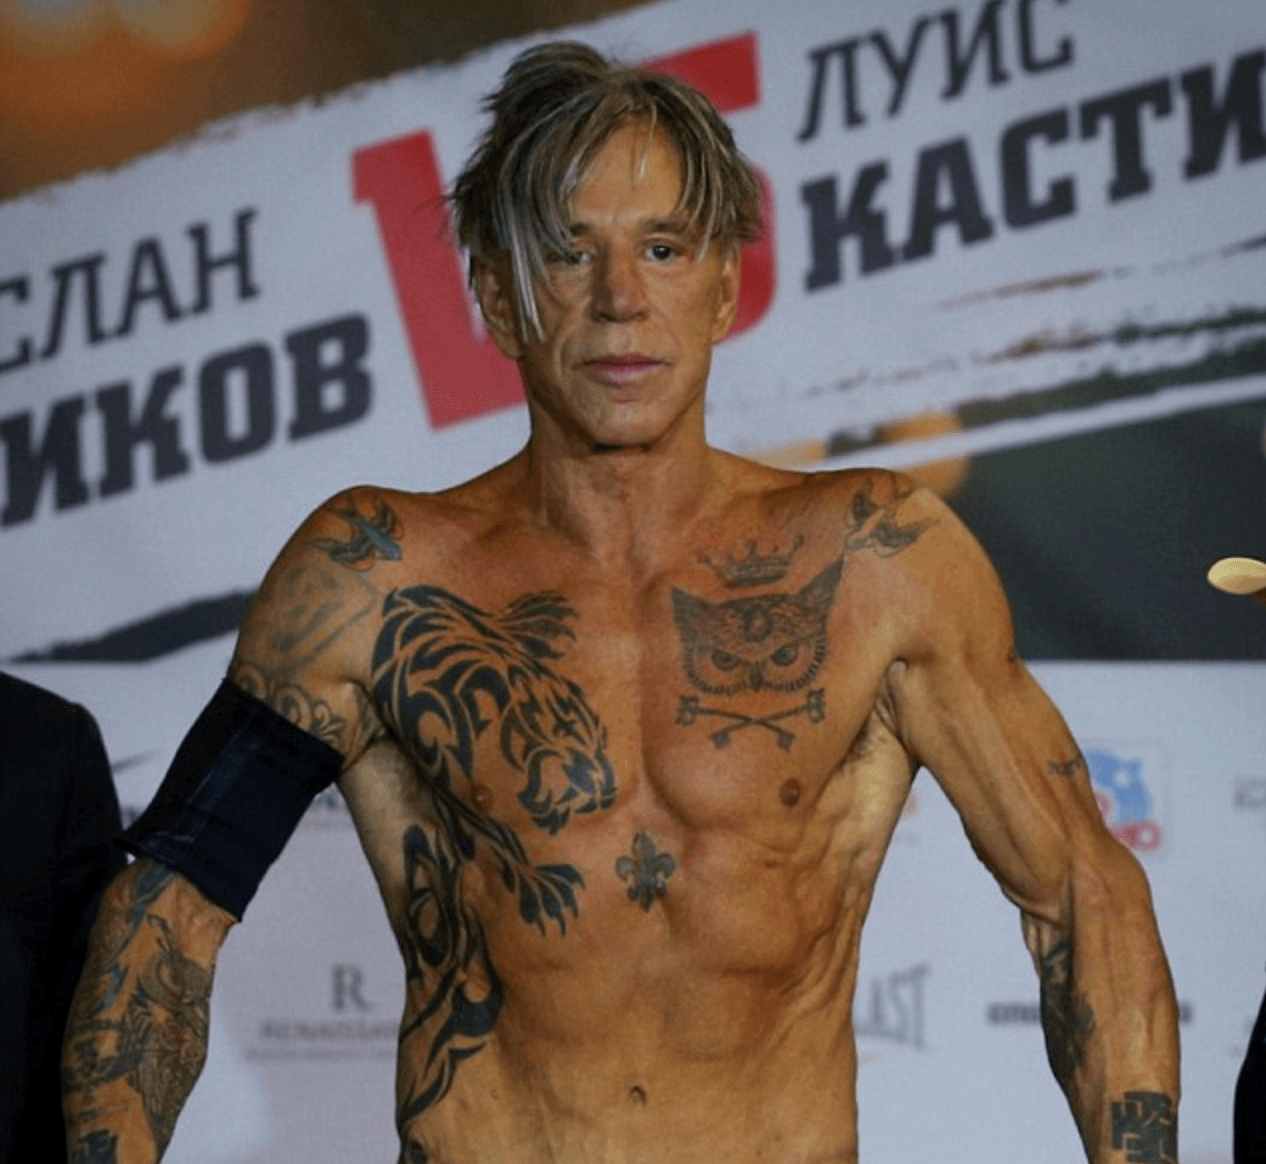 21 e1600779966676 20 Things You Never Knew About Mickey Rourke